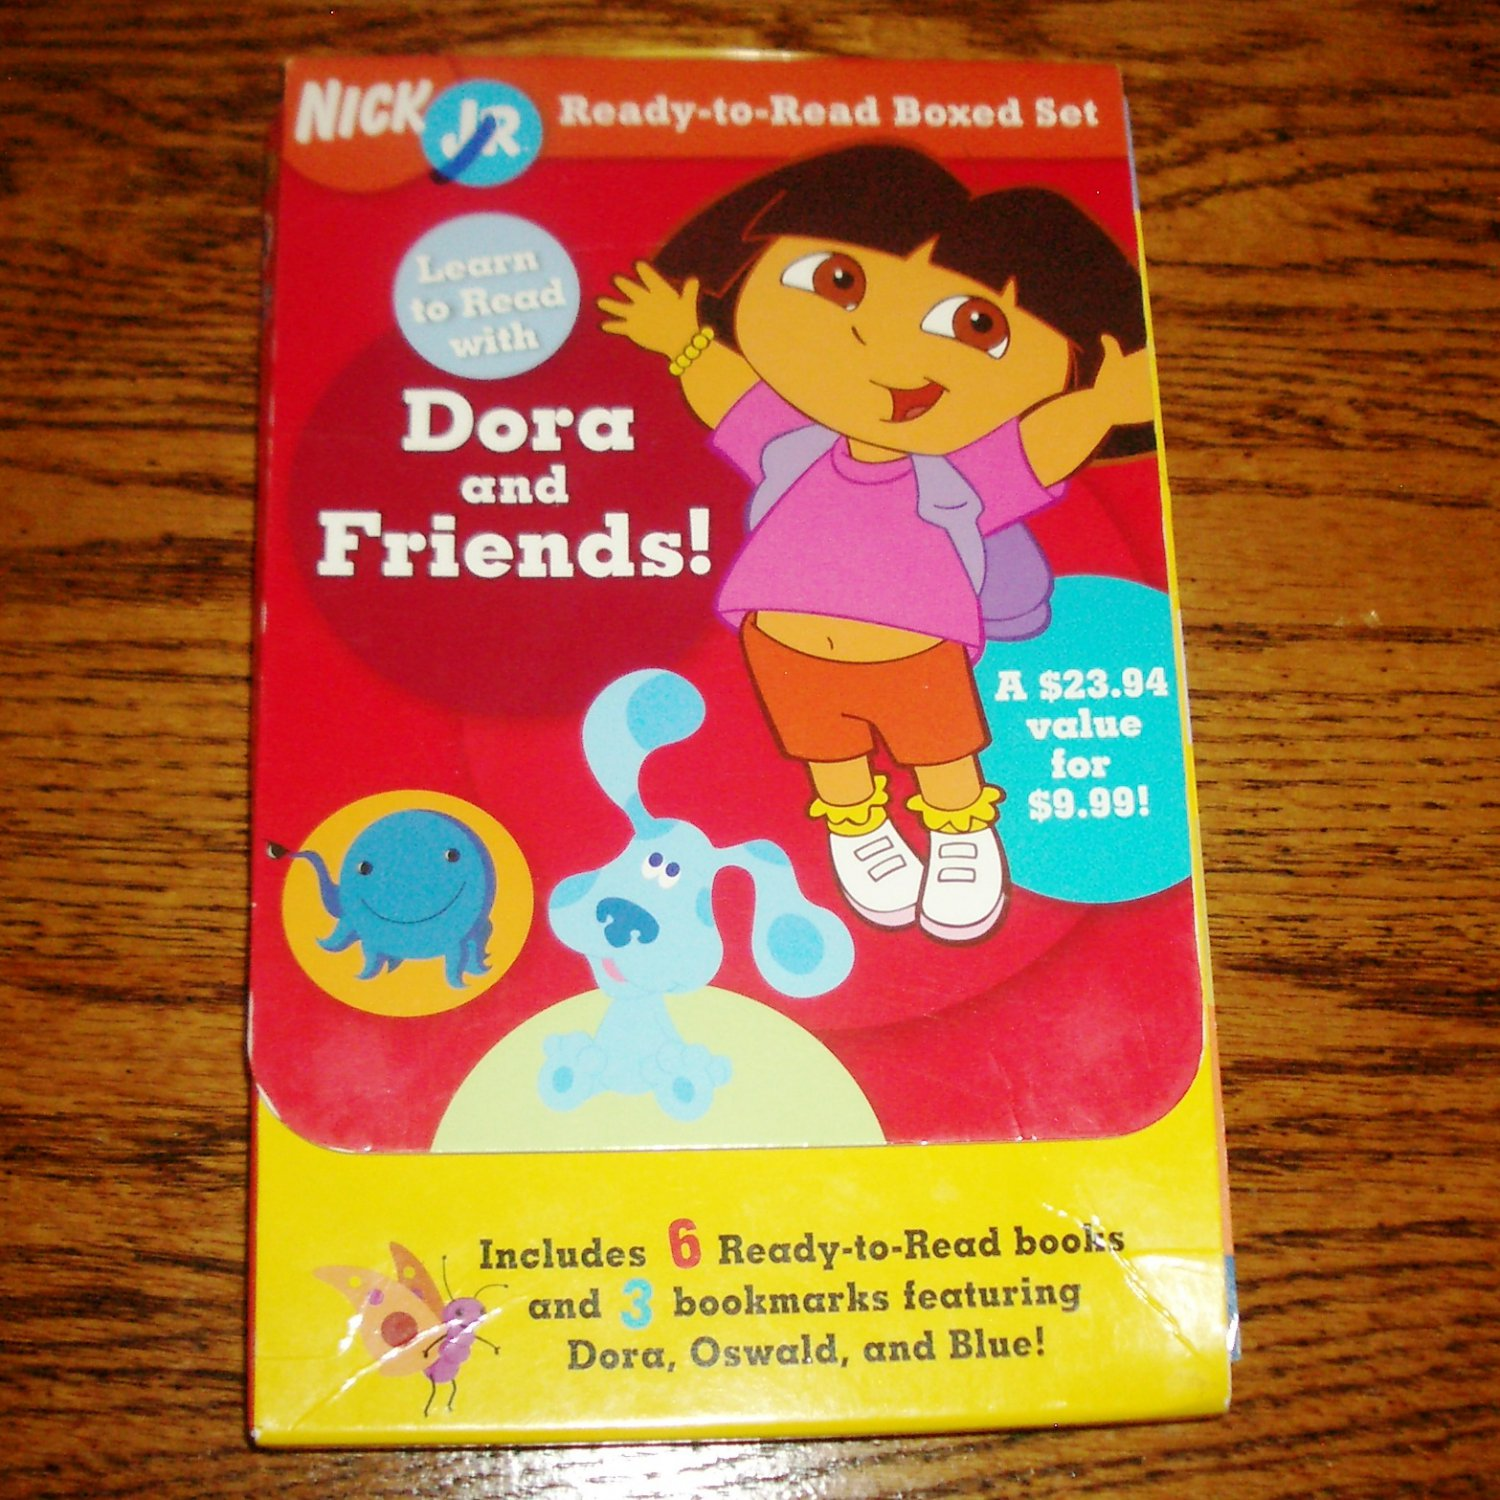 Learn to Read with Dora and Friends! Nick Jr. Ready-to-Read Boxed Set